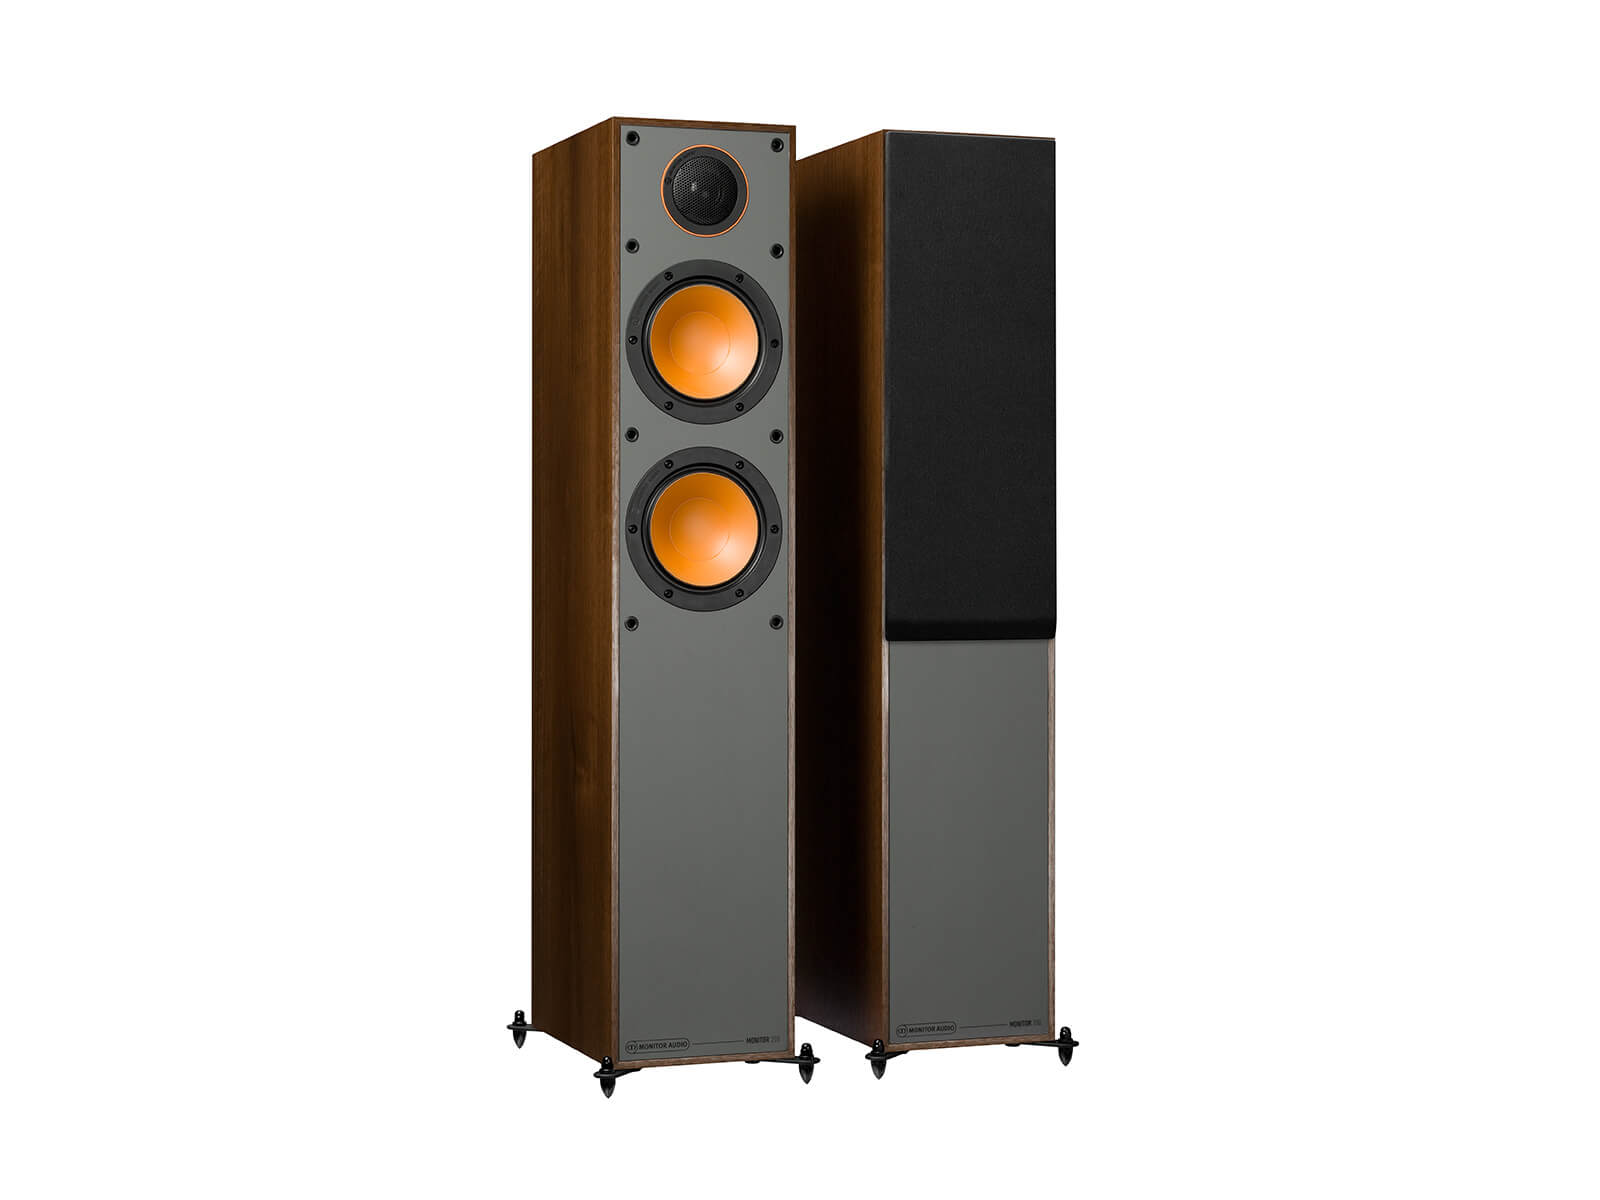 Monitor 200, floorstanding speakers, with and without grille in a walnut vinyl finish.